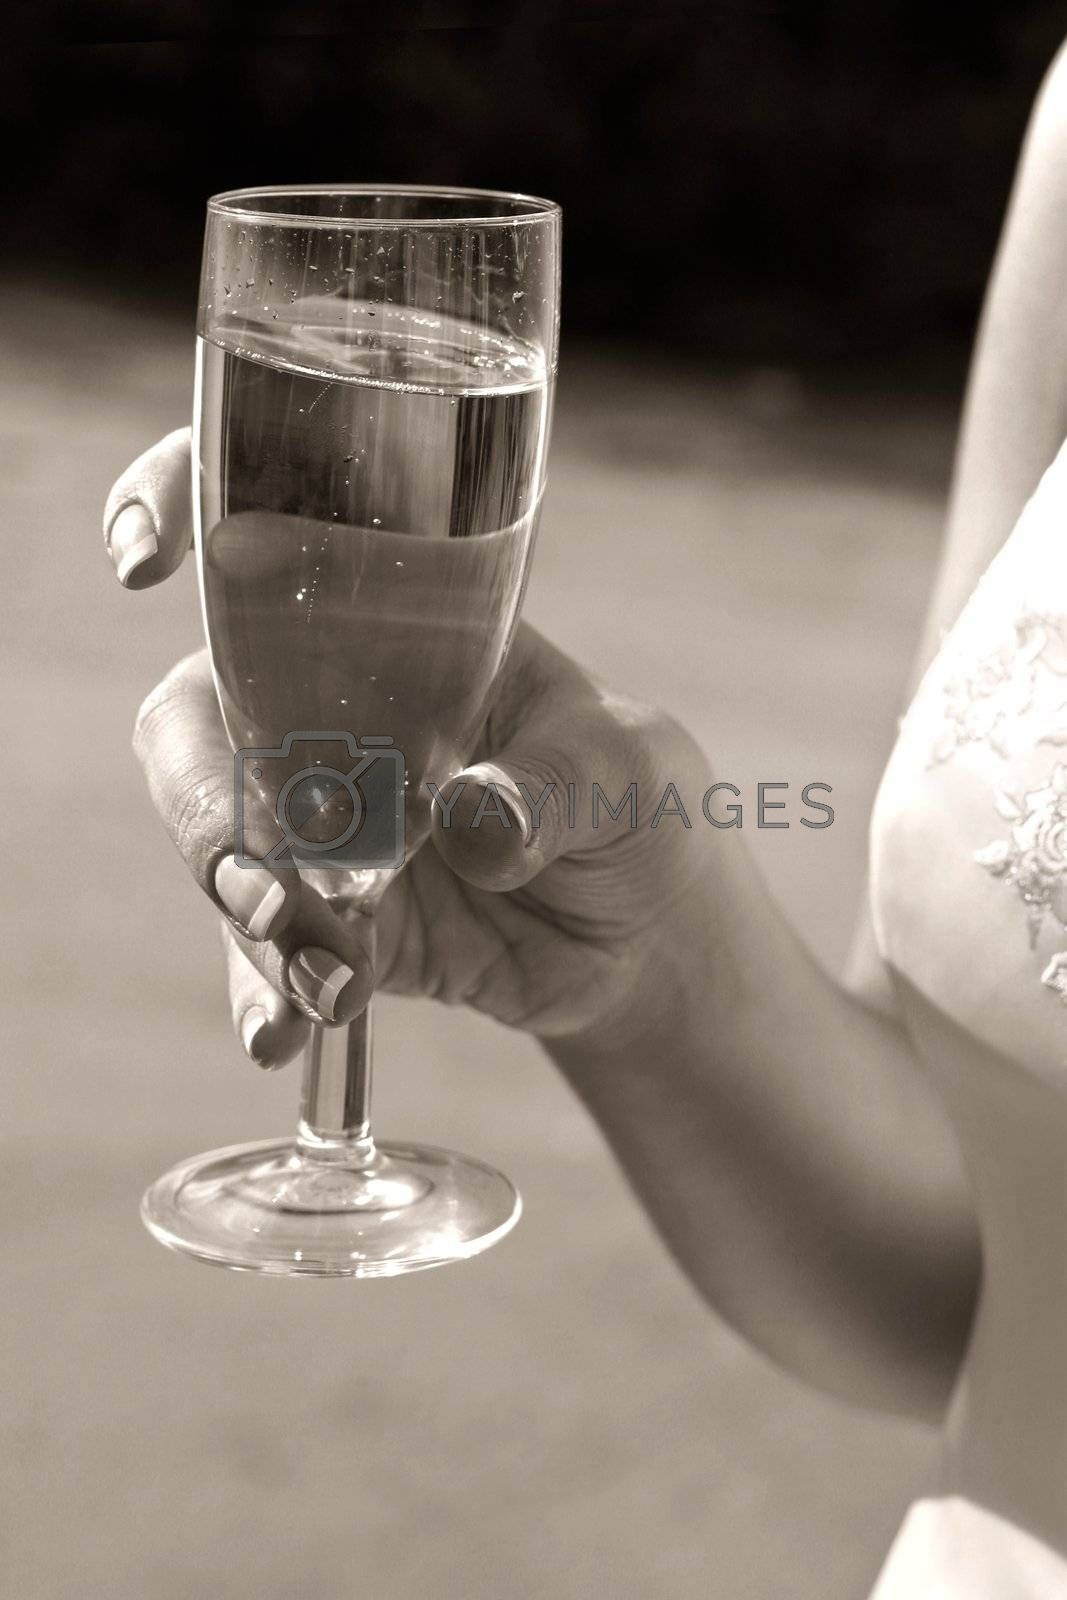 Glass with champagne in hands of the bride. b/w+sepia